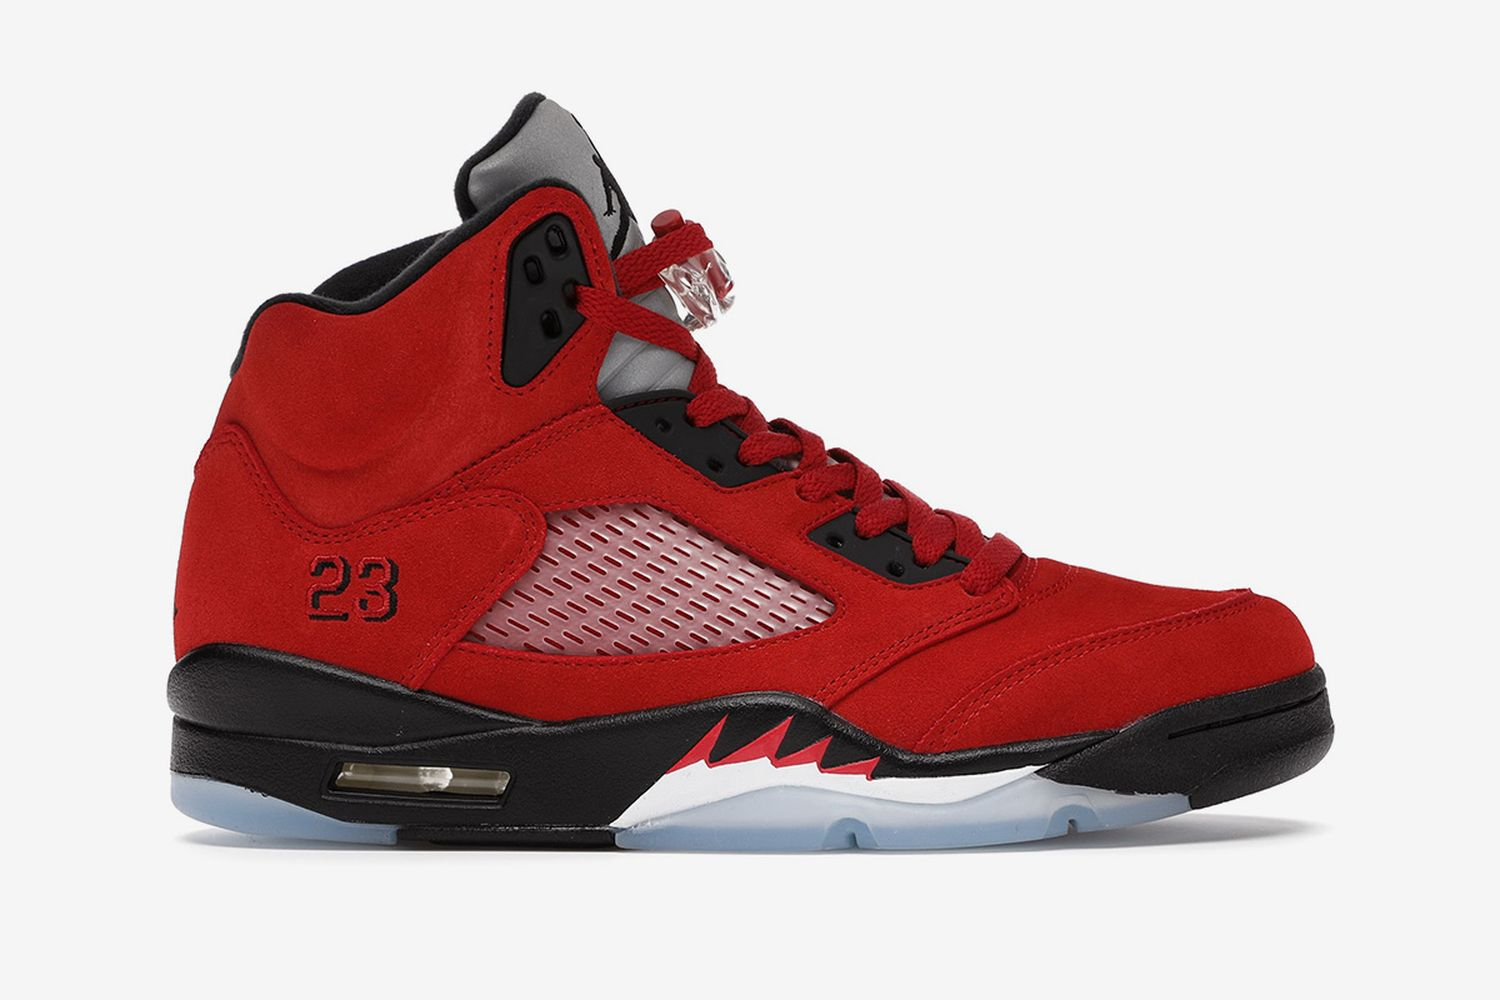 Air Jordan 5 Retro Raging Bull